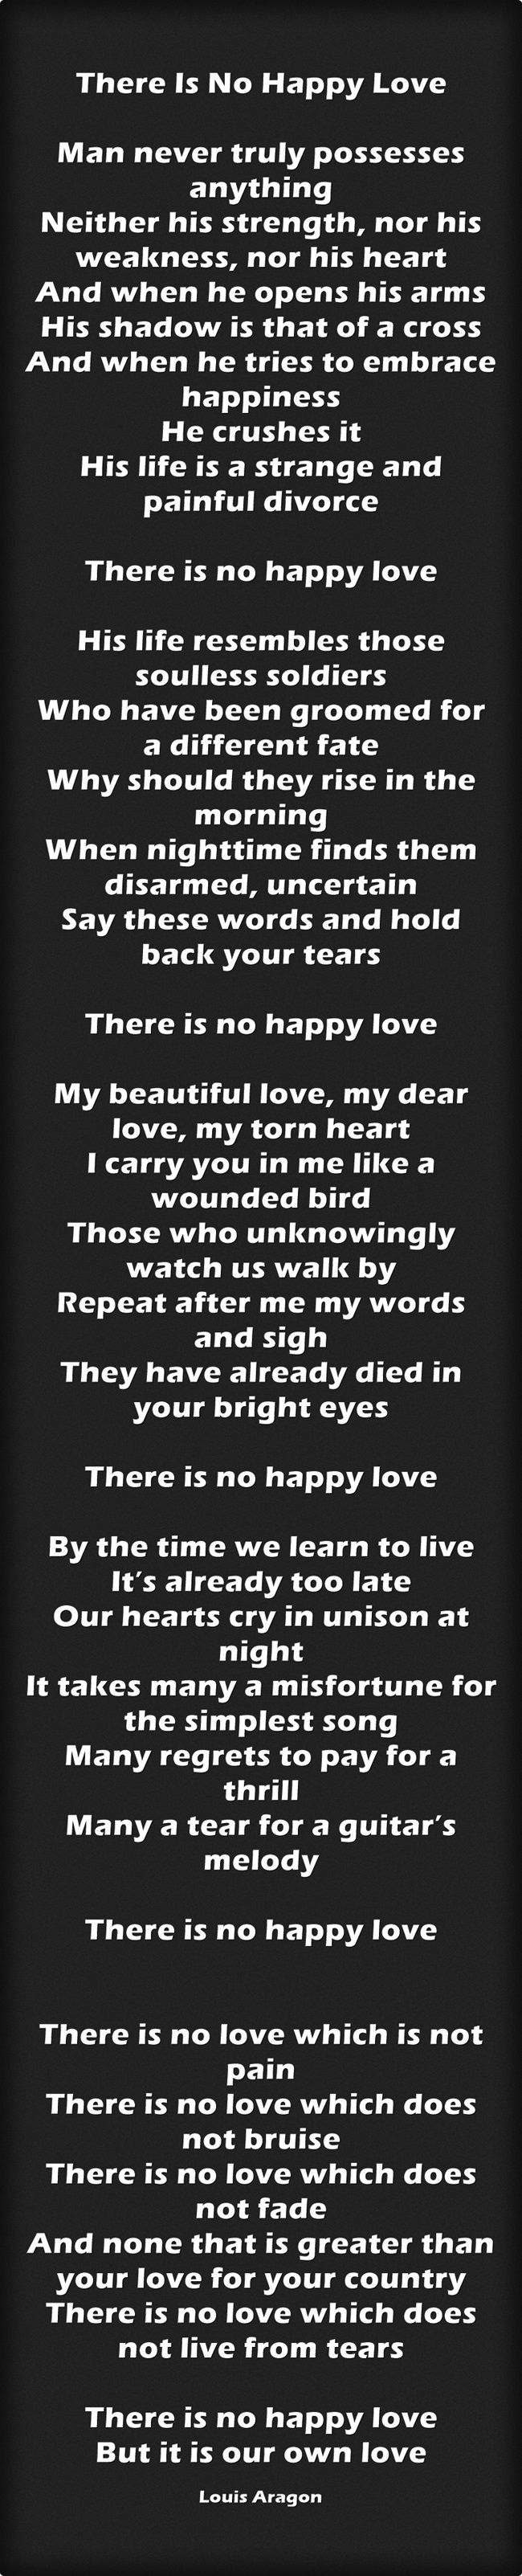 There Is No Happy Love by Louis Aragon